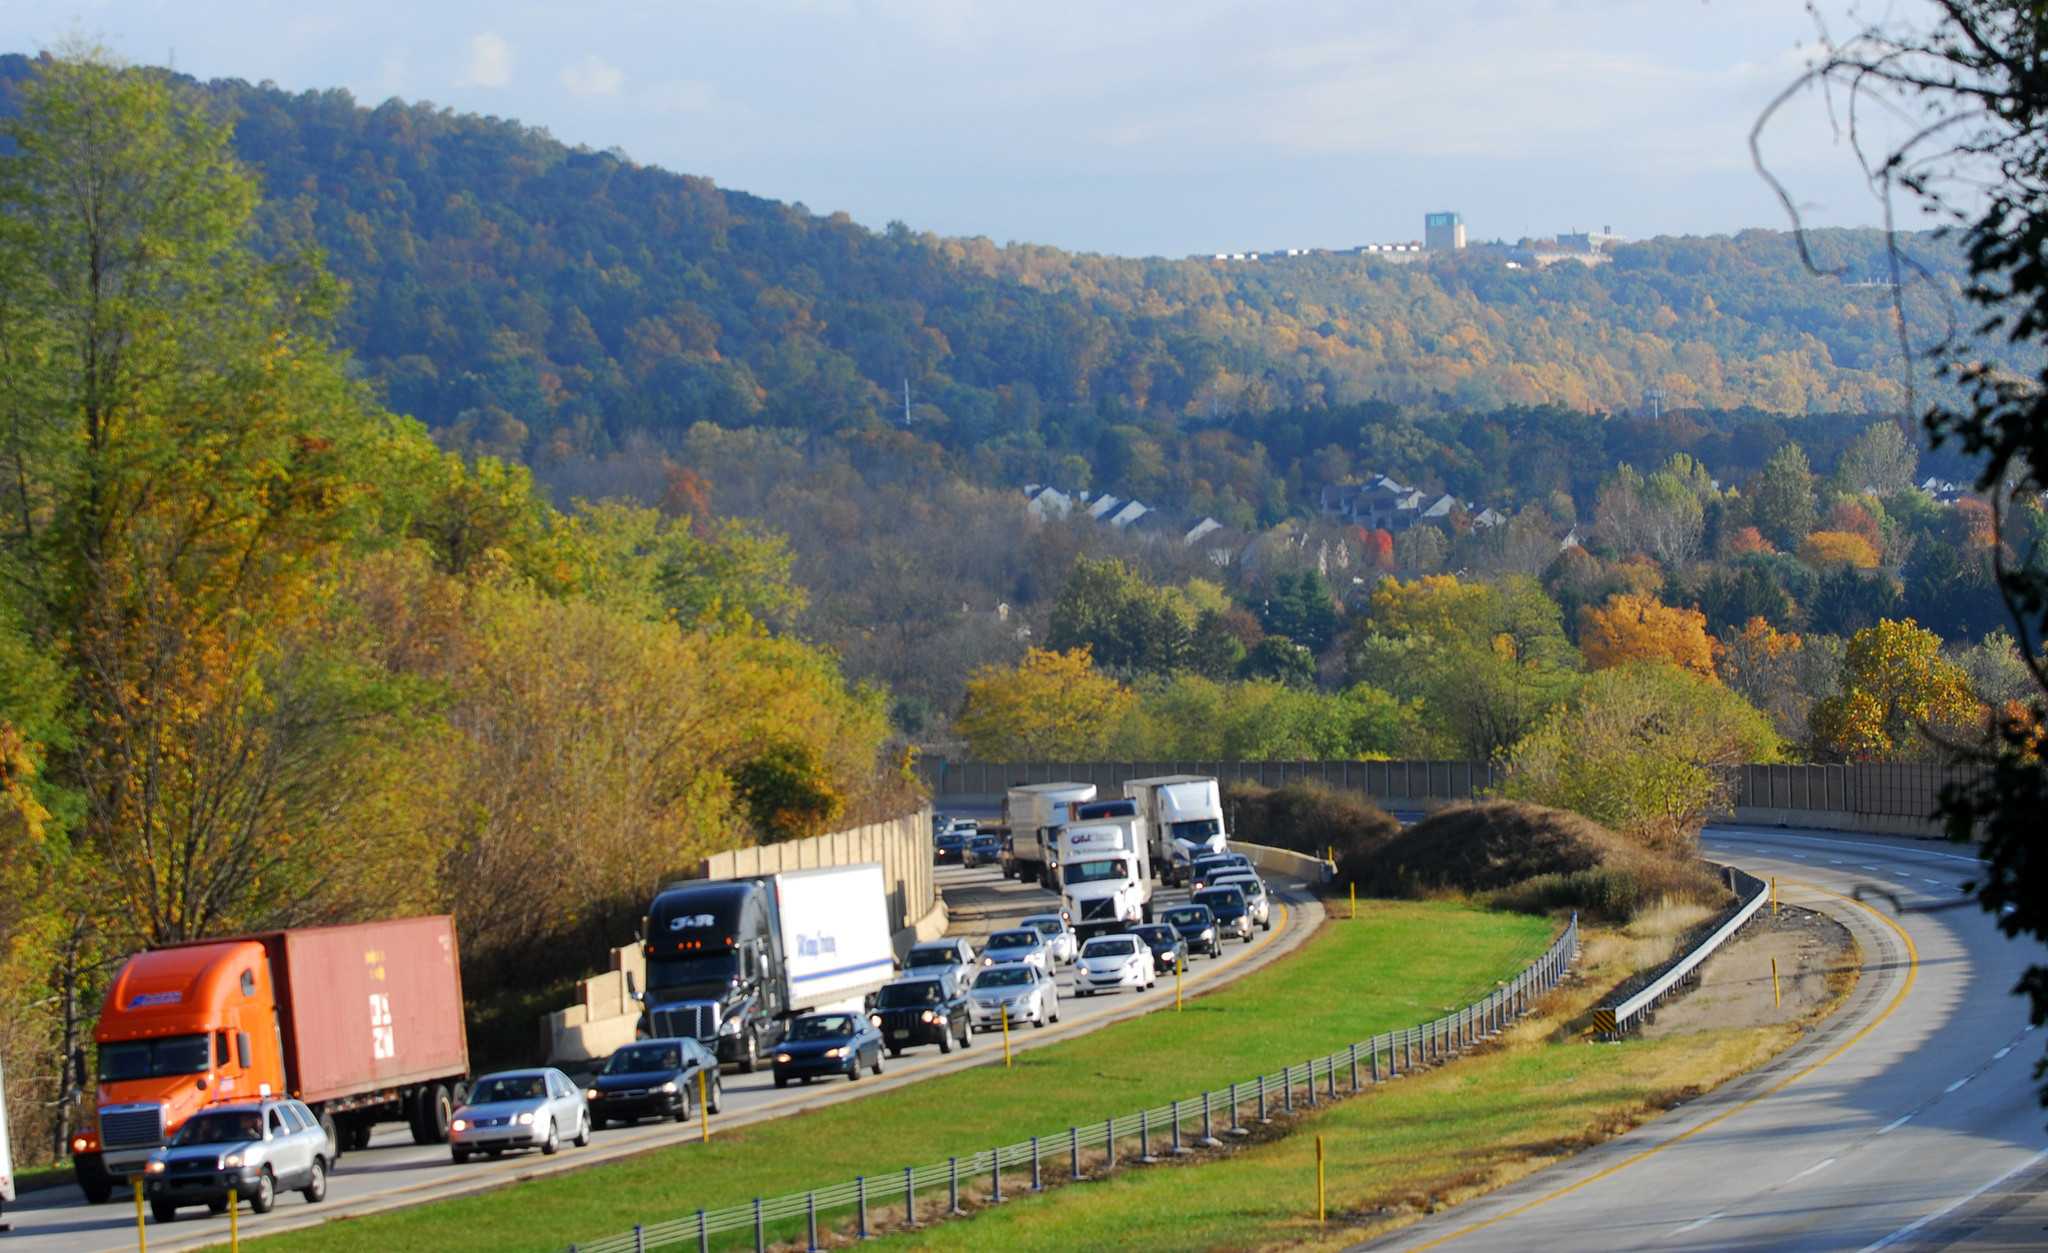 fatal accident causes heavy traffic on route 78 east - the morning call